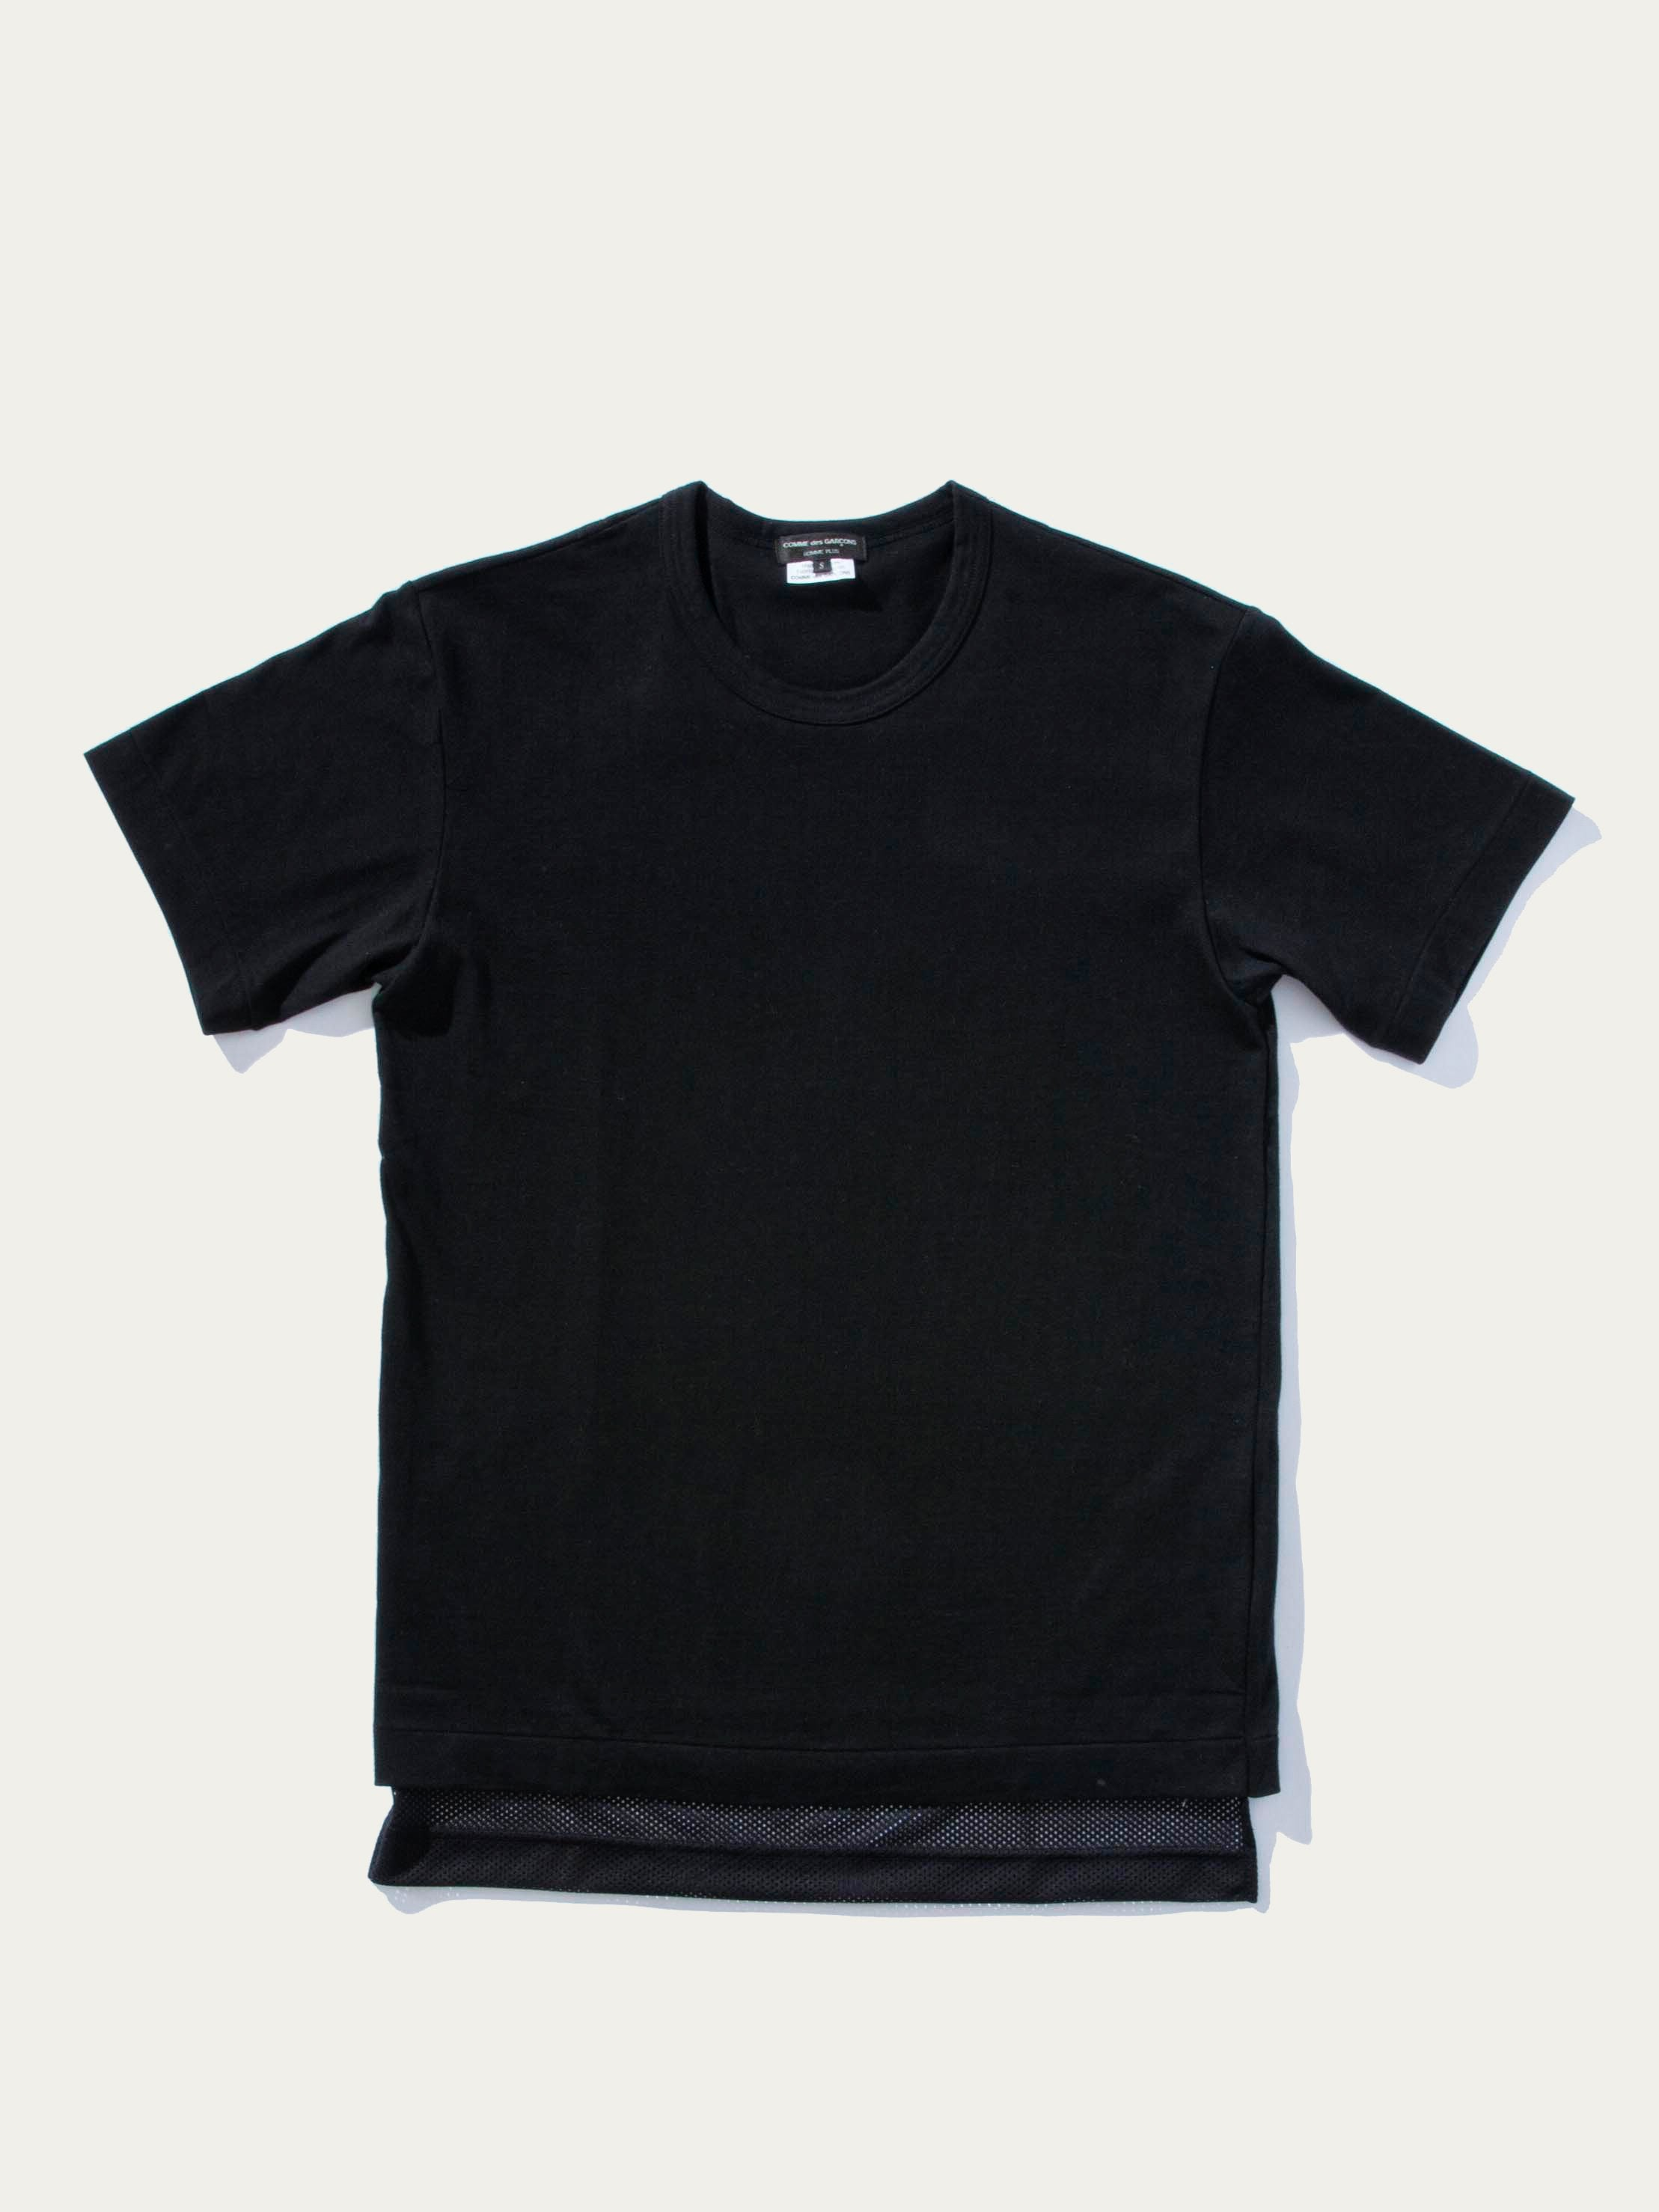 Black Mesh Short Sleeve T-Shirt 1